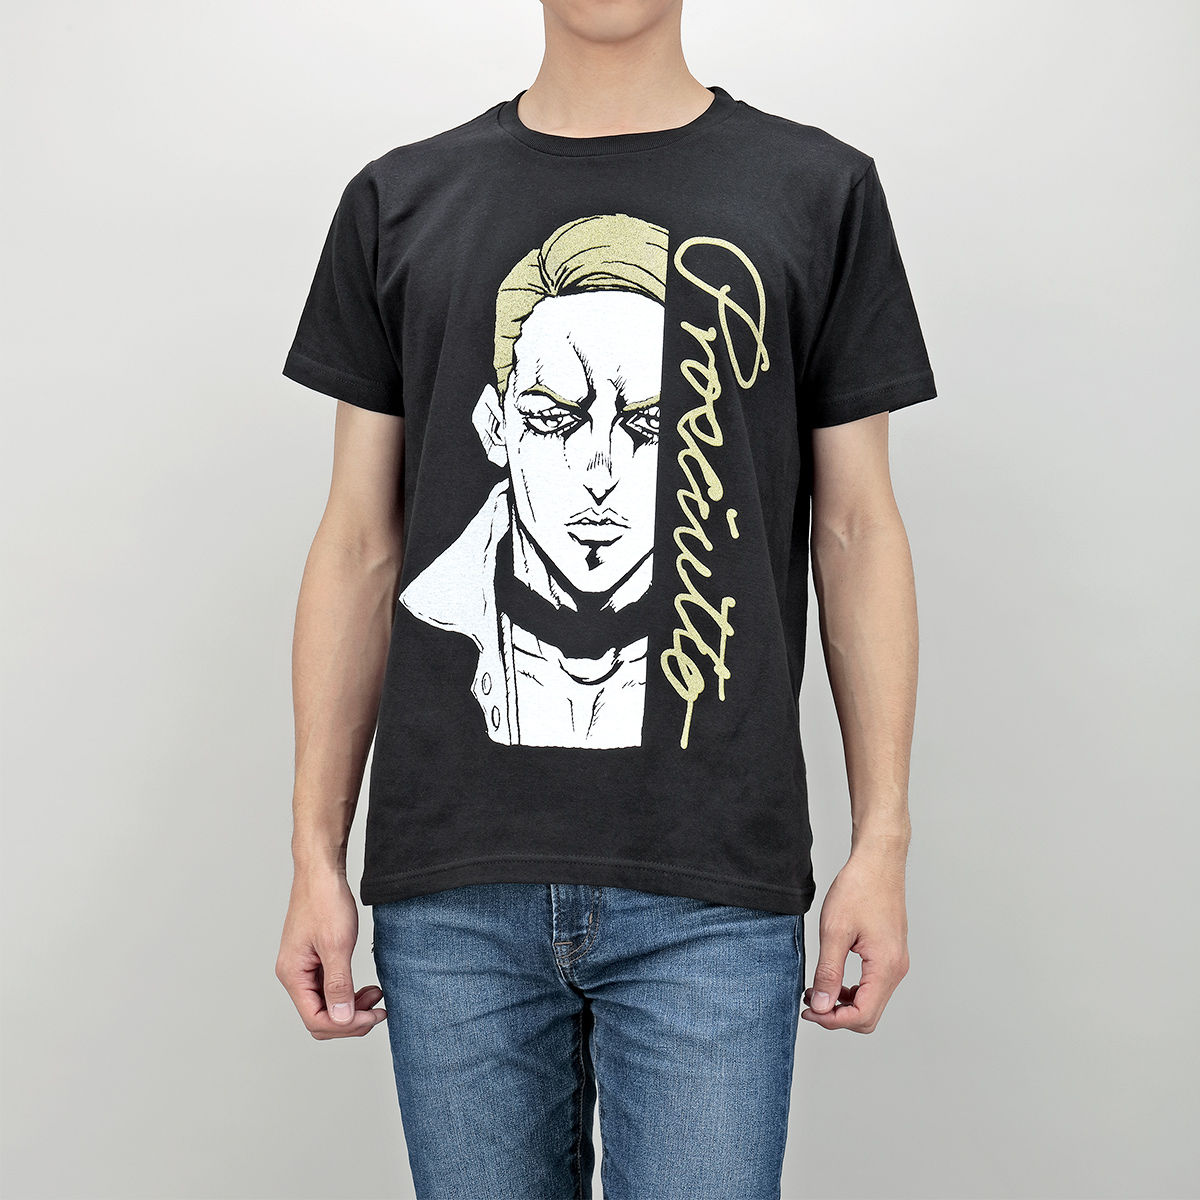 Hitman Team T-shirt (Prosciutto)—JoJo's Bizarre Adventure: Golden Wind